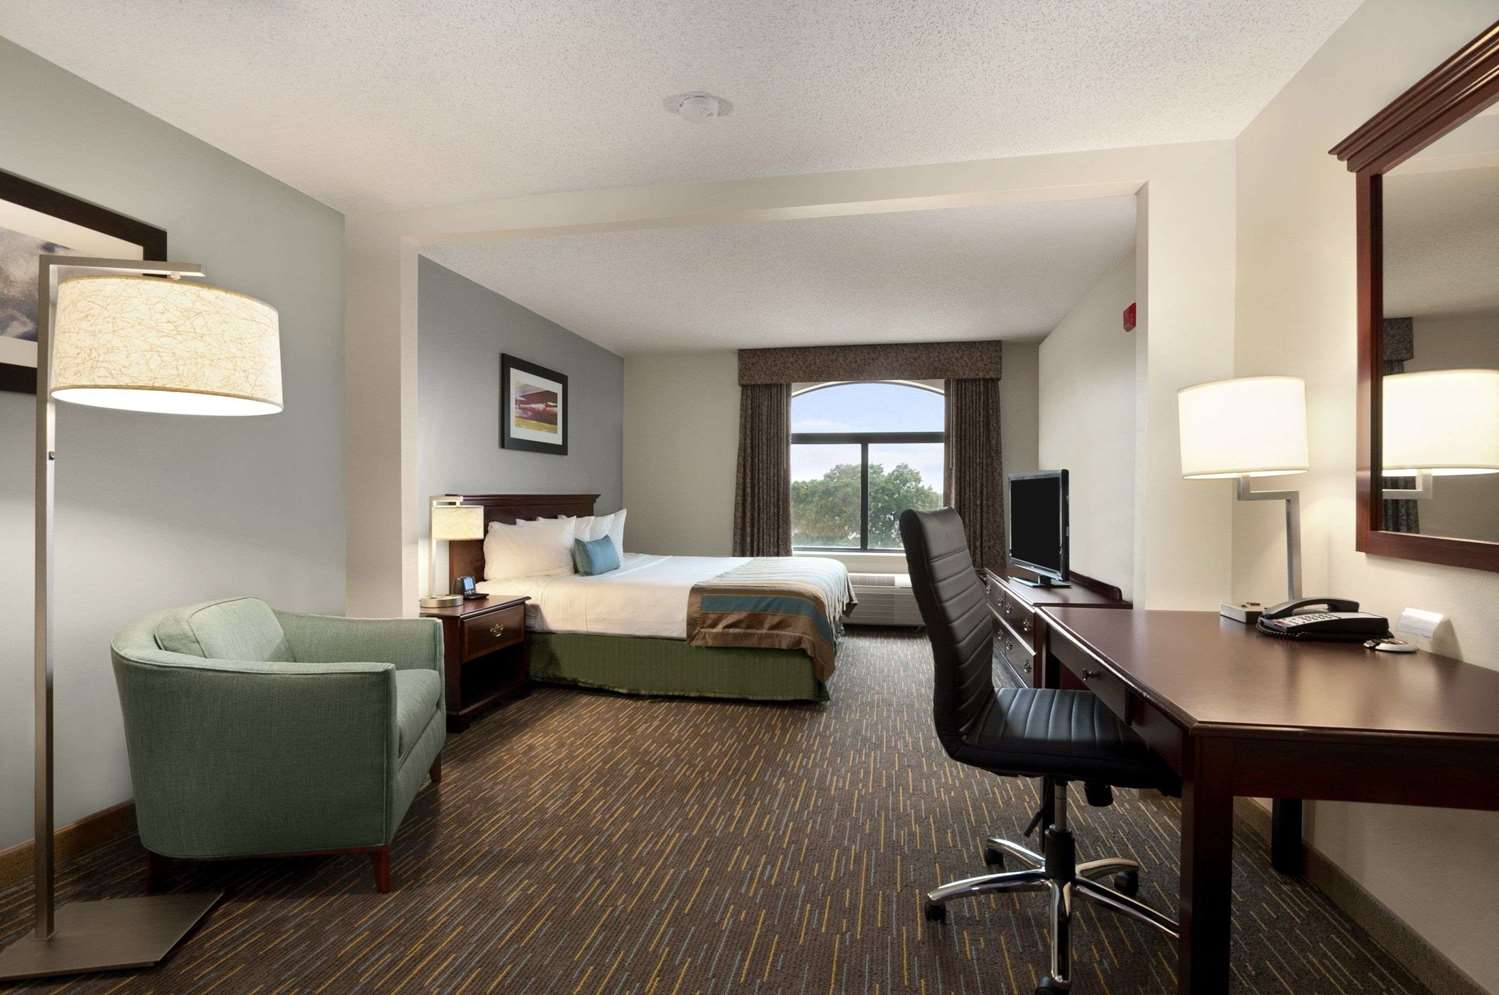 wingate by wyndham hotel round rock tx see discounts. Black Bedroom Furniture Sets. Home Design Ideas